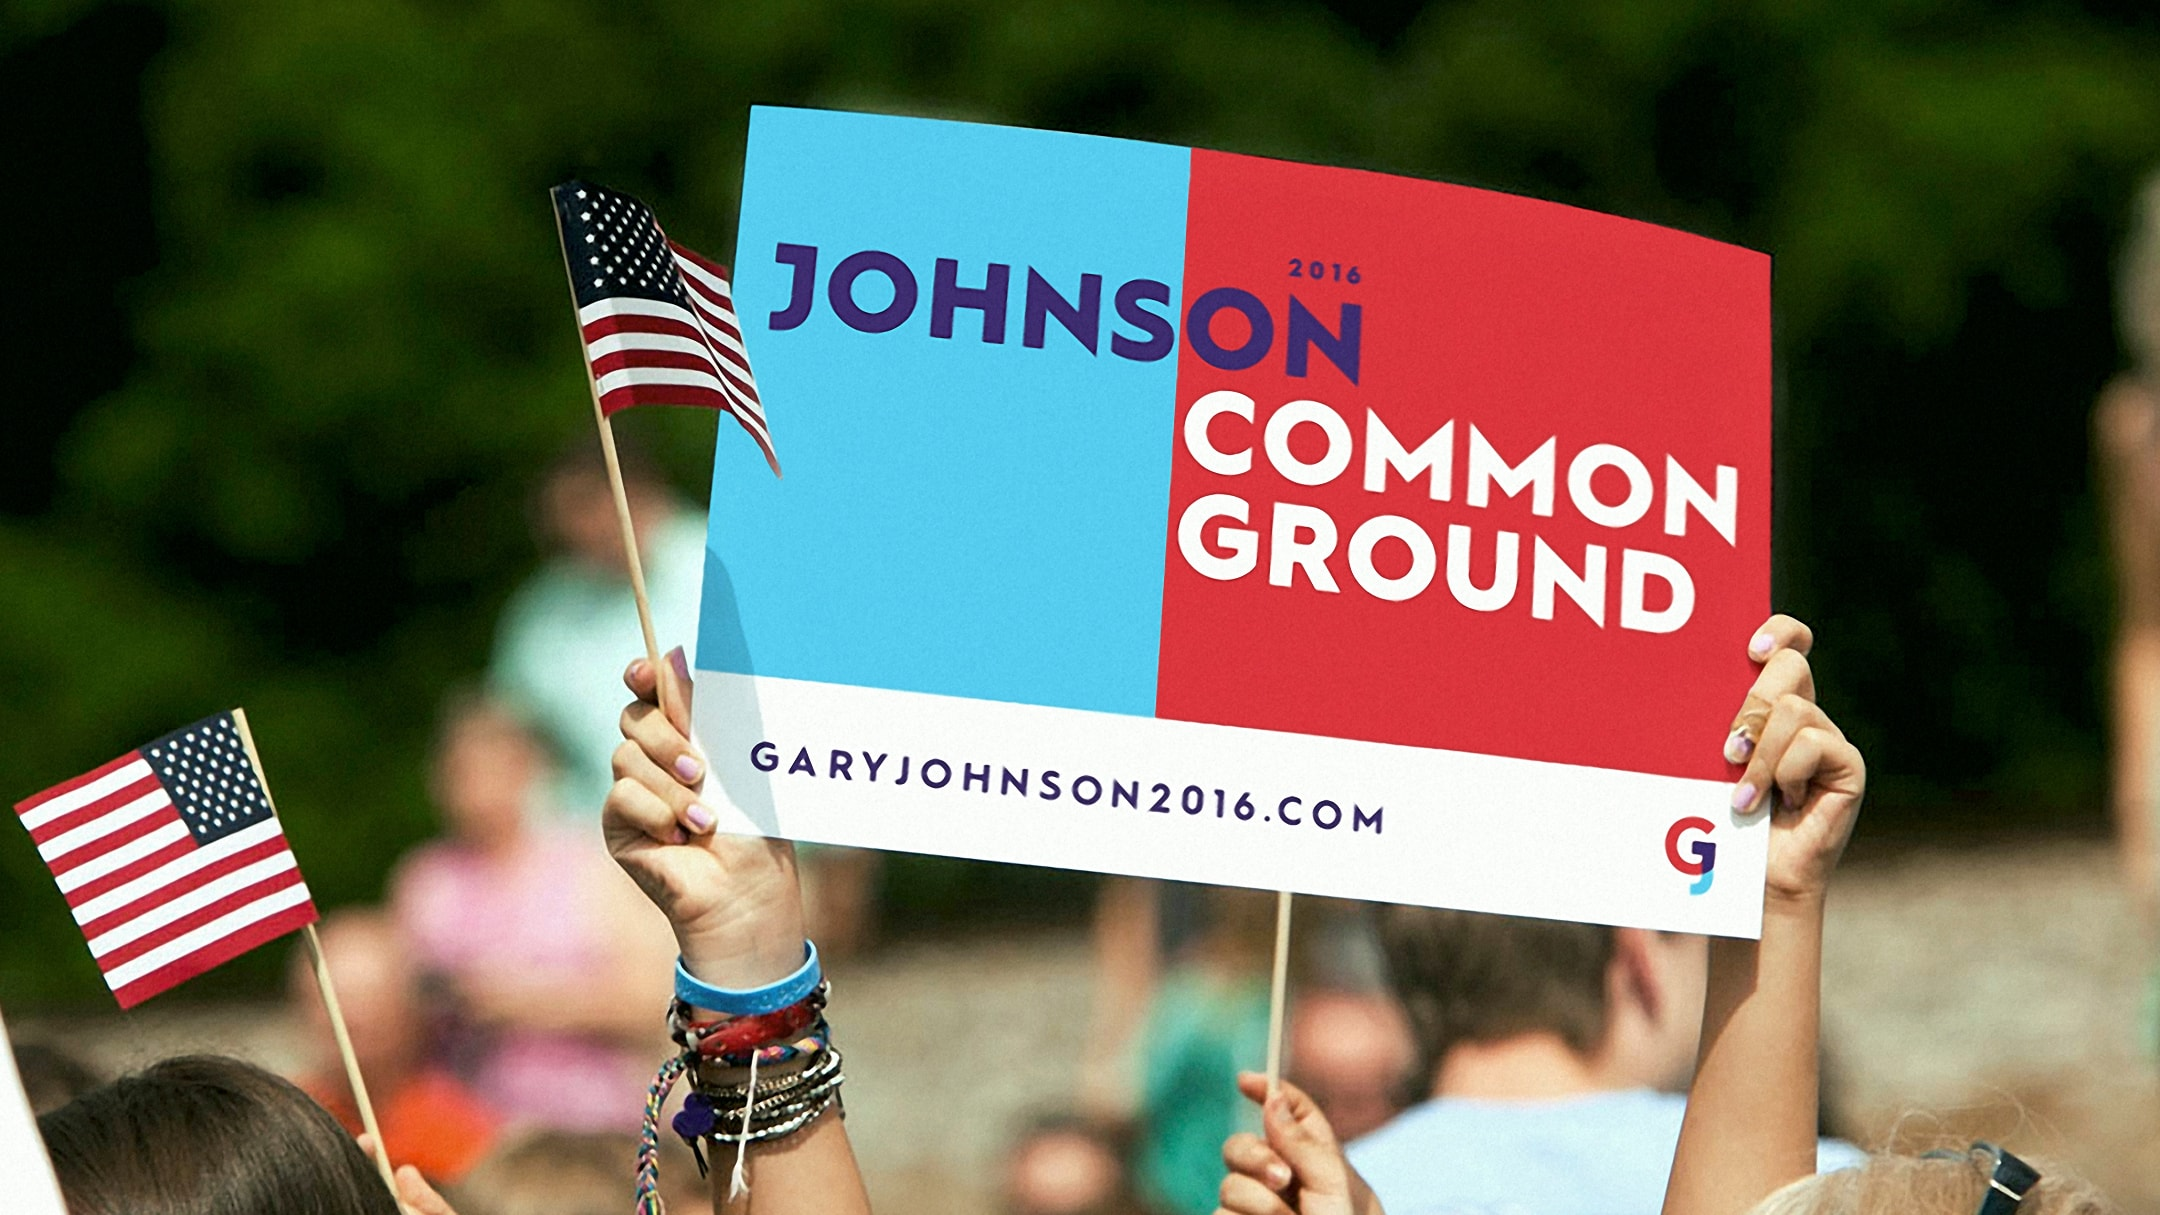 Gary Johnson spec campaign poster in crowd